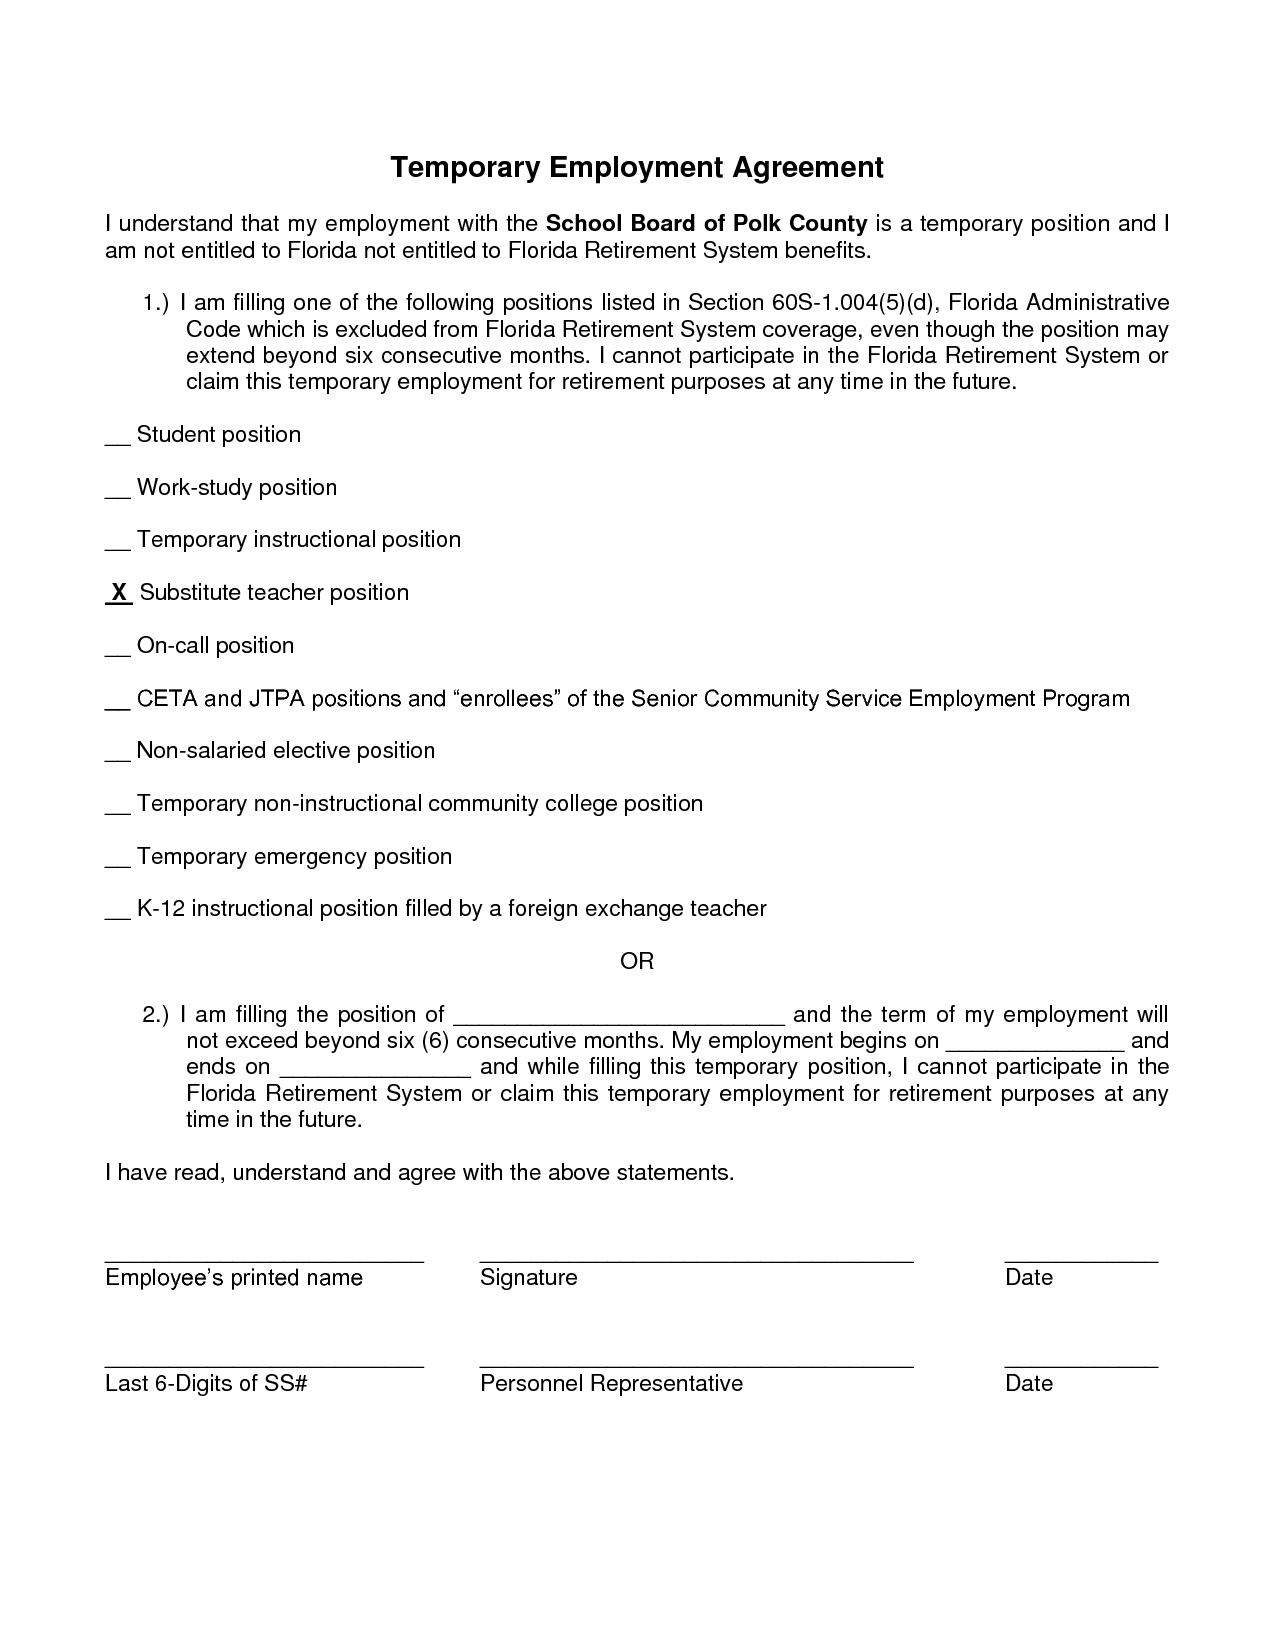 Employee Temporary Employment Contract Template